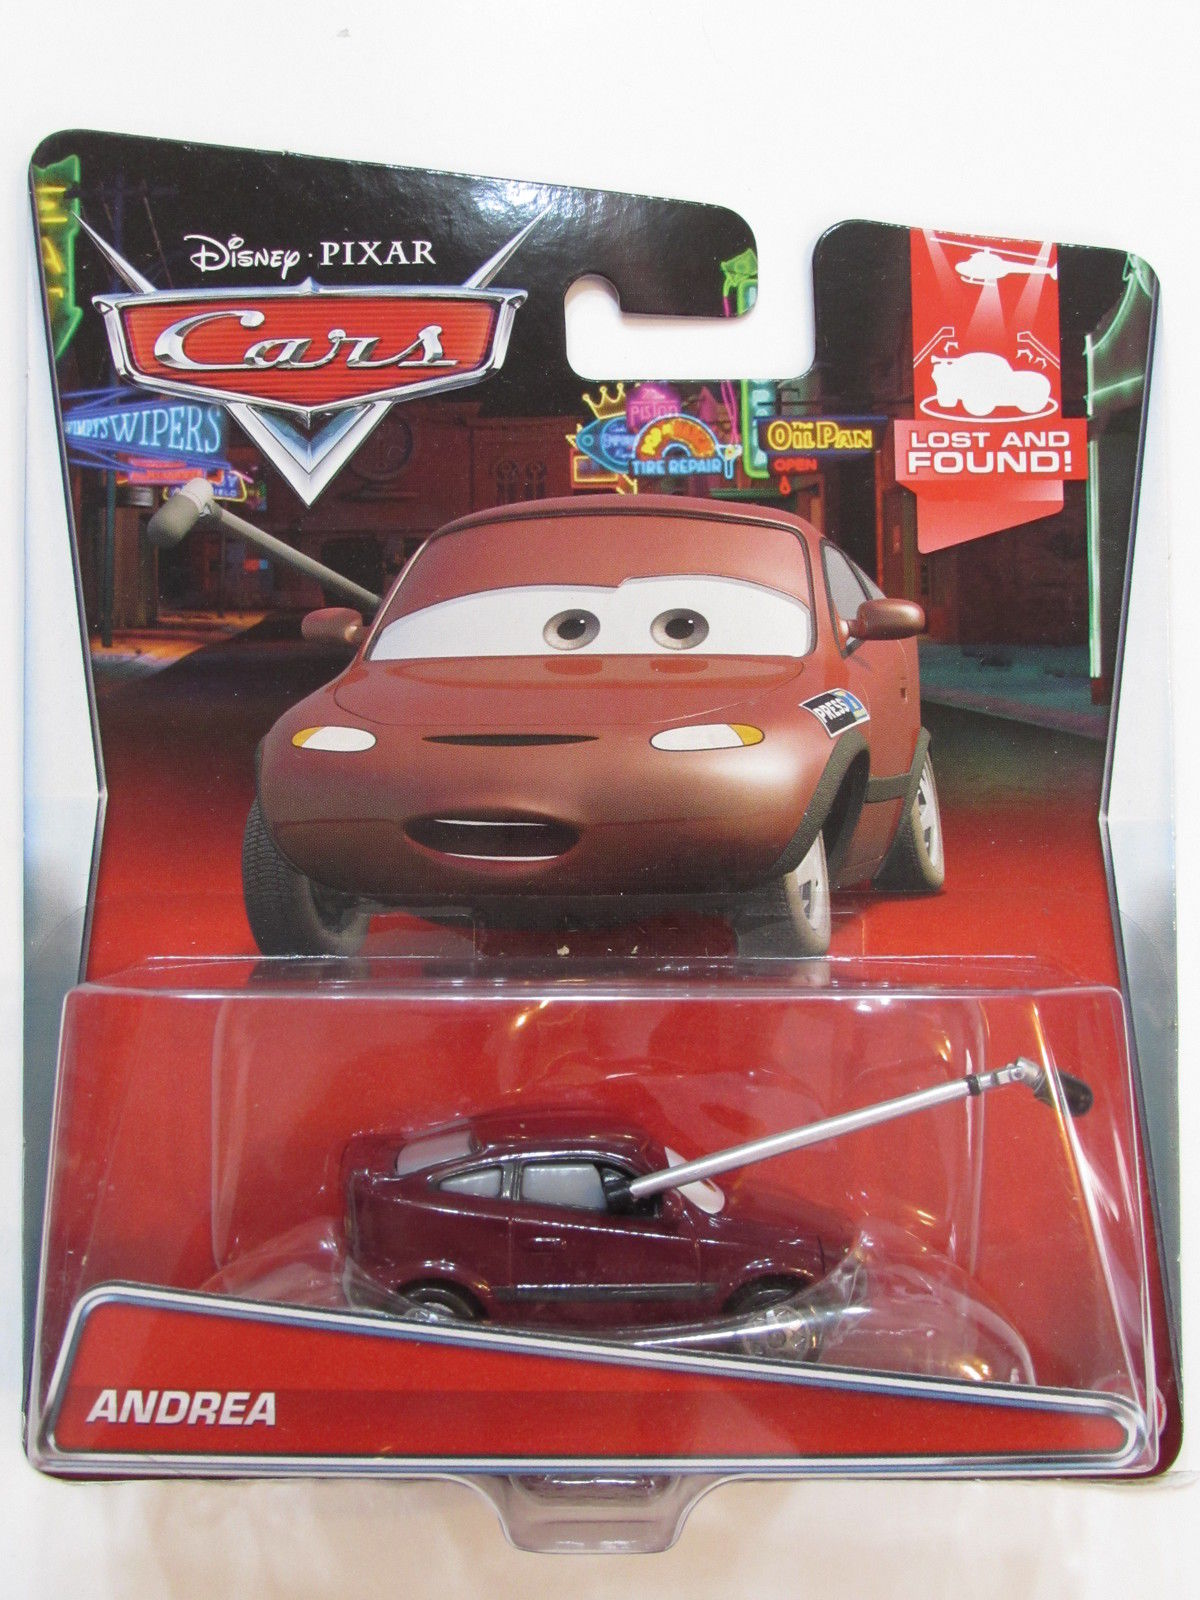 DISNEY PIXAR CARS LOST AND FOUND ANDREA